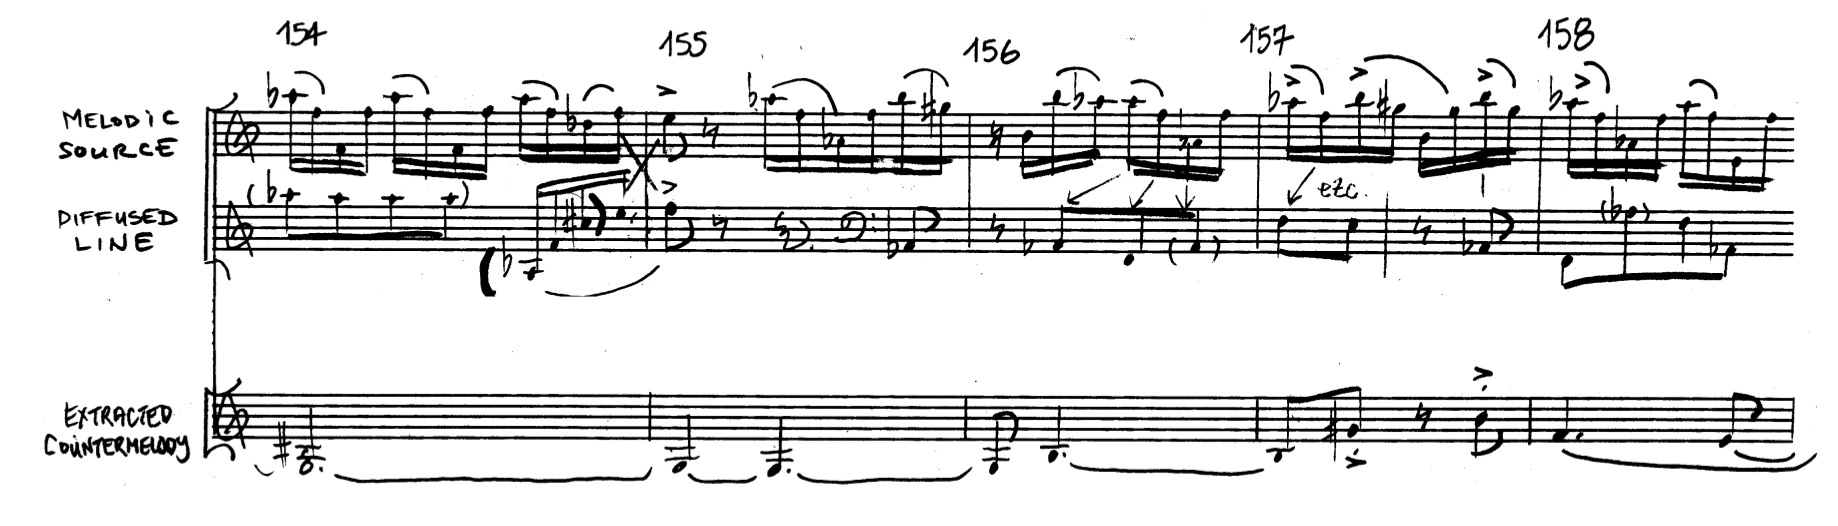 Example 6 and 7:   Th  e melodic source and its di  ff  used lines and the extracted countermelody.   eating   fi  lumena lionheart   mm. 154 – 158. Below, Generating an auxiliary countermelody (in the horn line) from the melodic source (oboe). mm. 155 – 160 (extract).